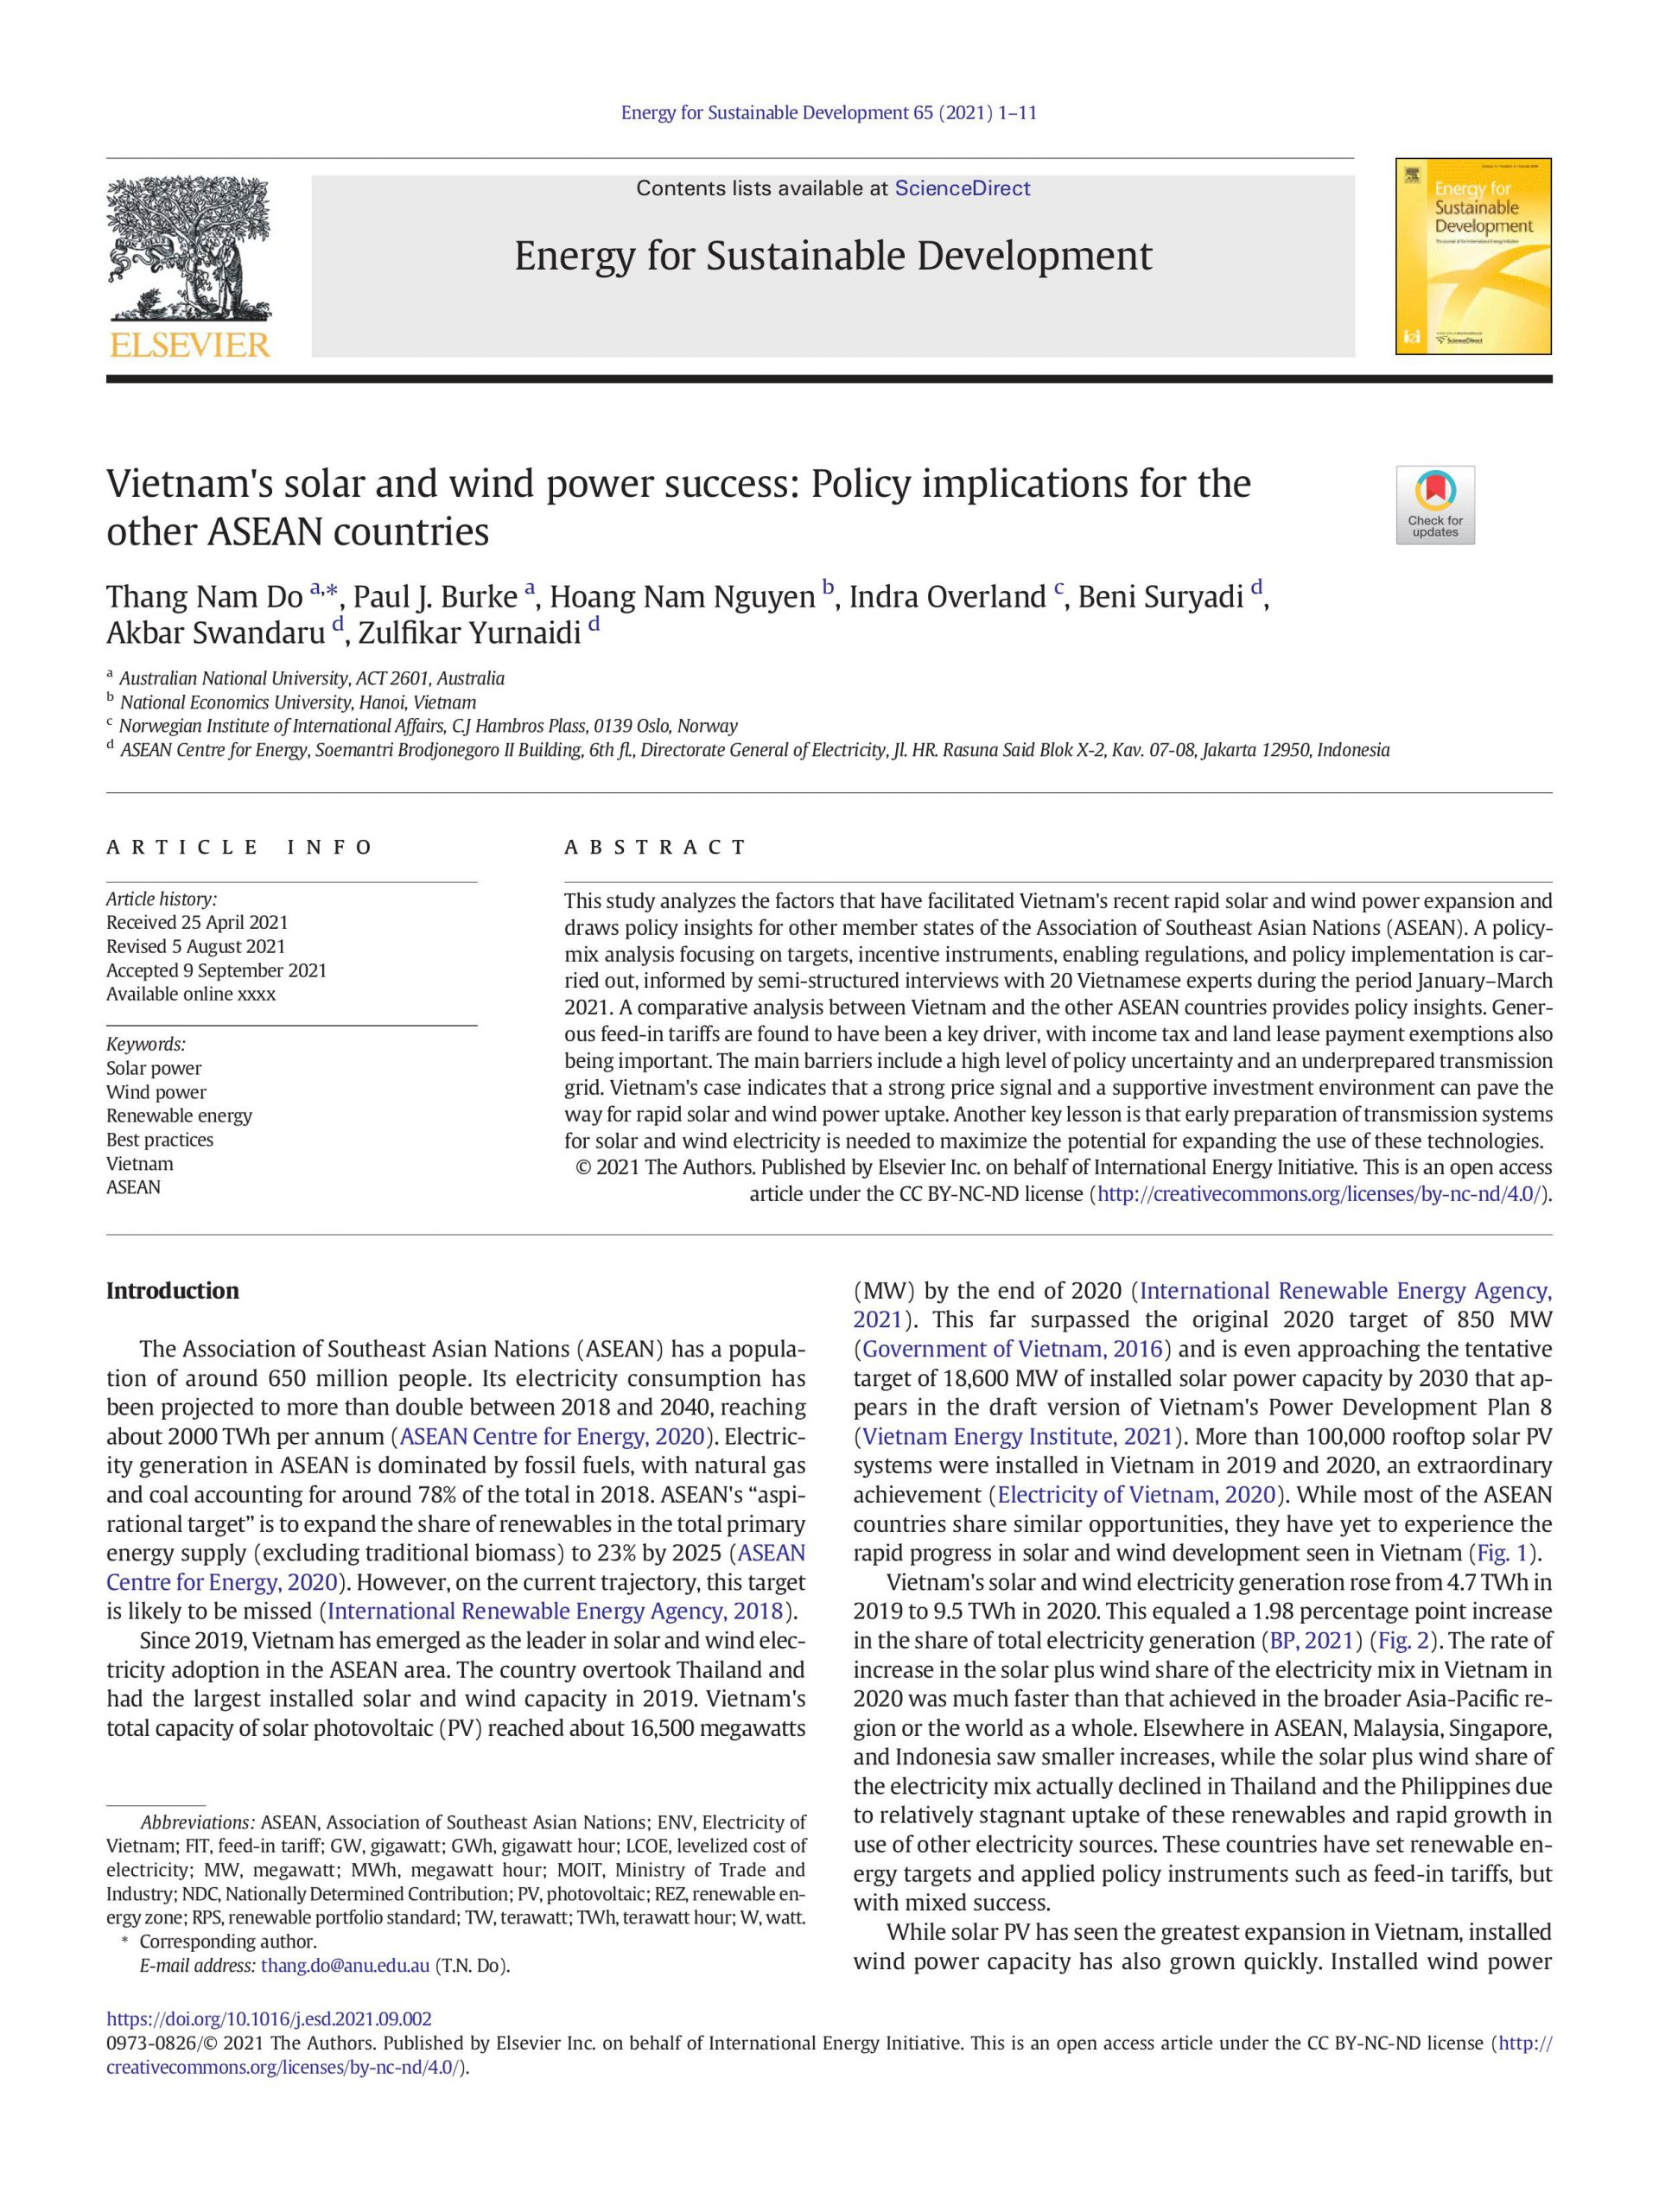 Vietnam's solar and wind power success: Policy implications for the other ASEAN countries